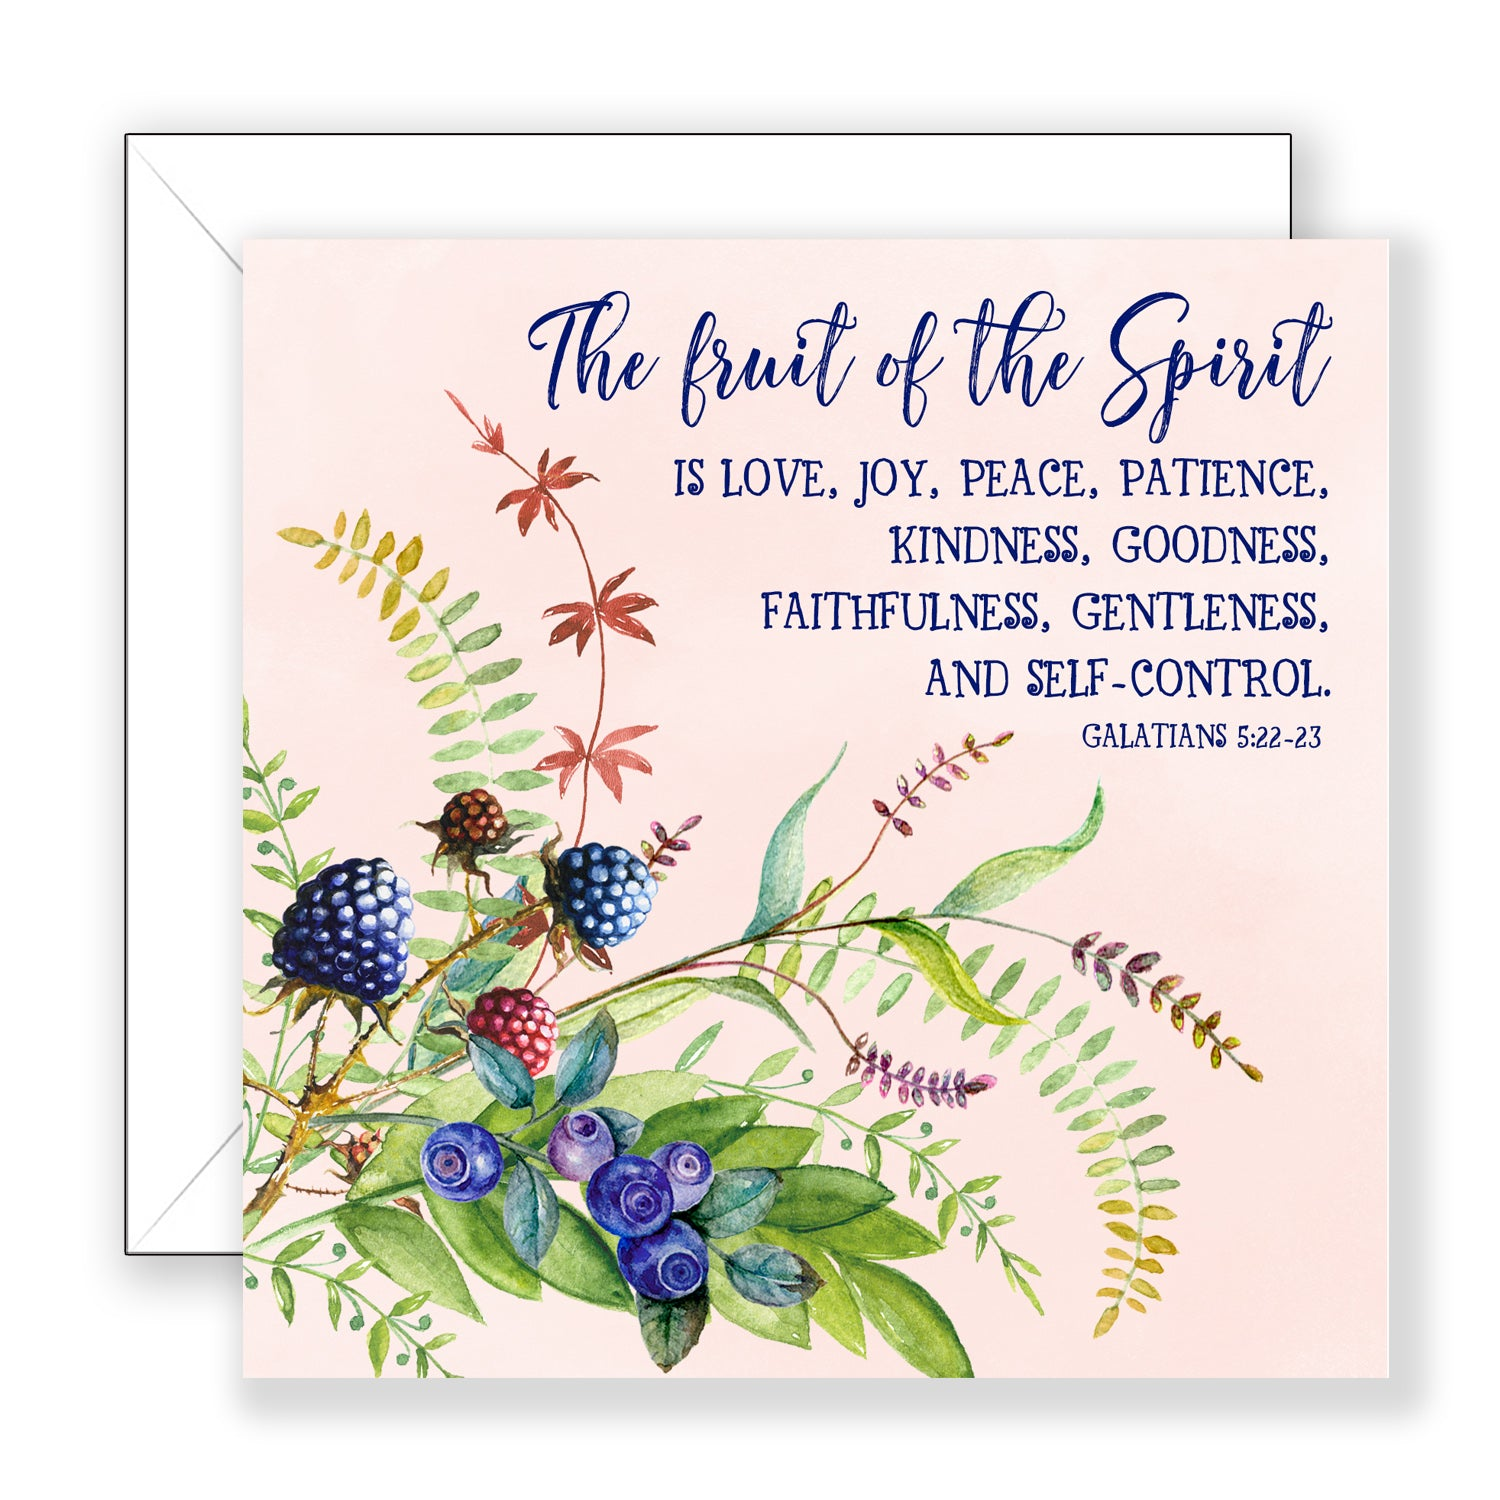 The Fruit of the Spirit - Encouragement Card